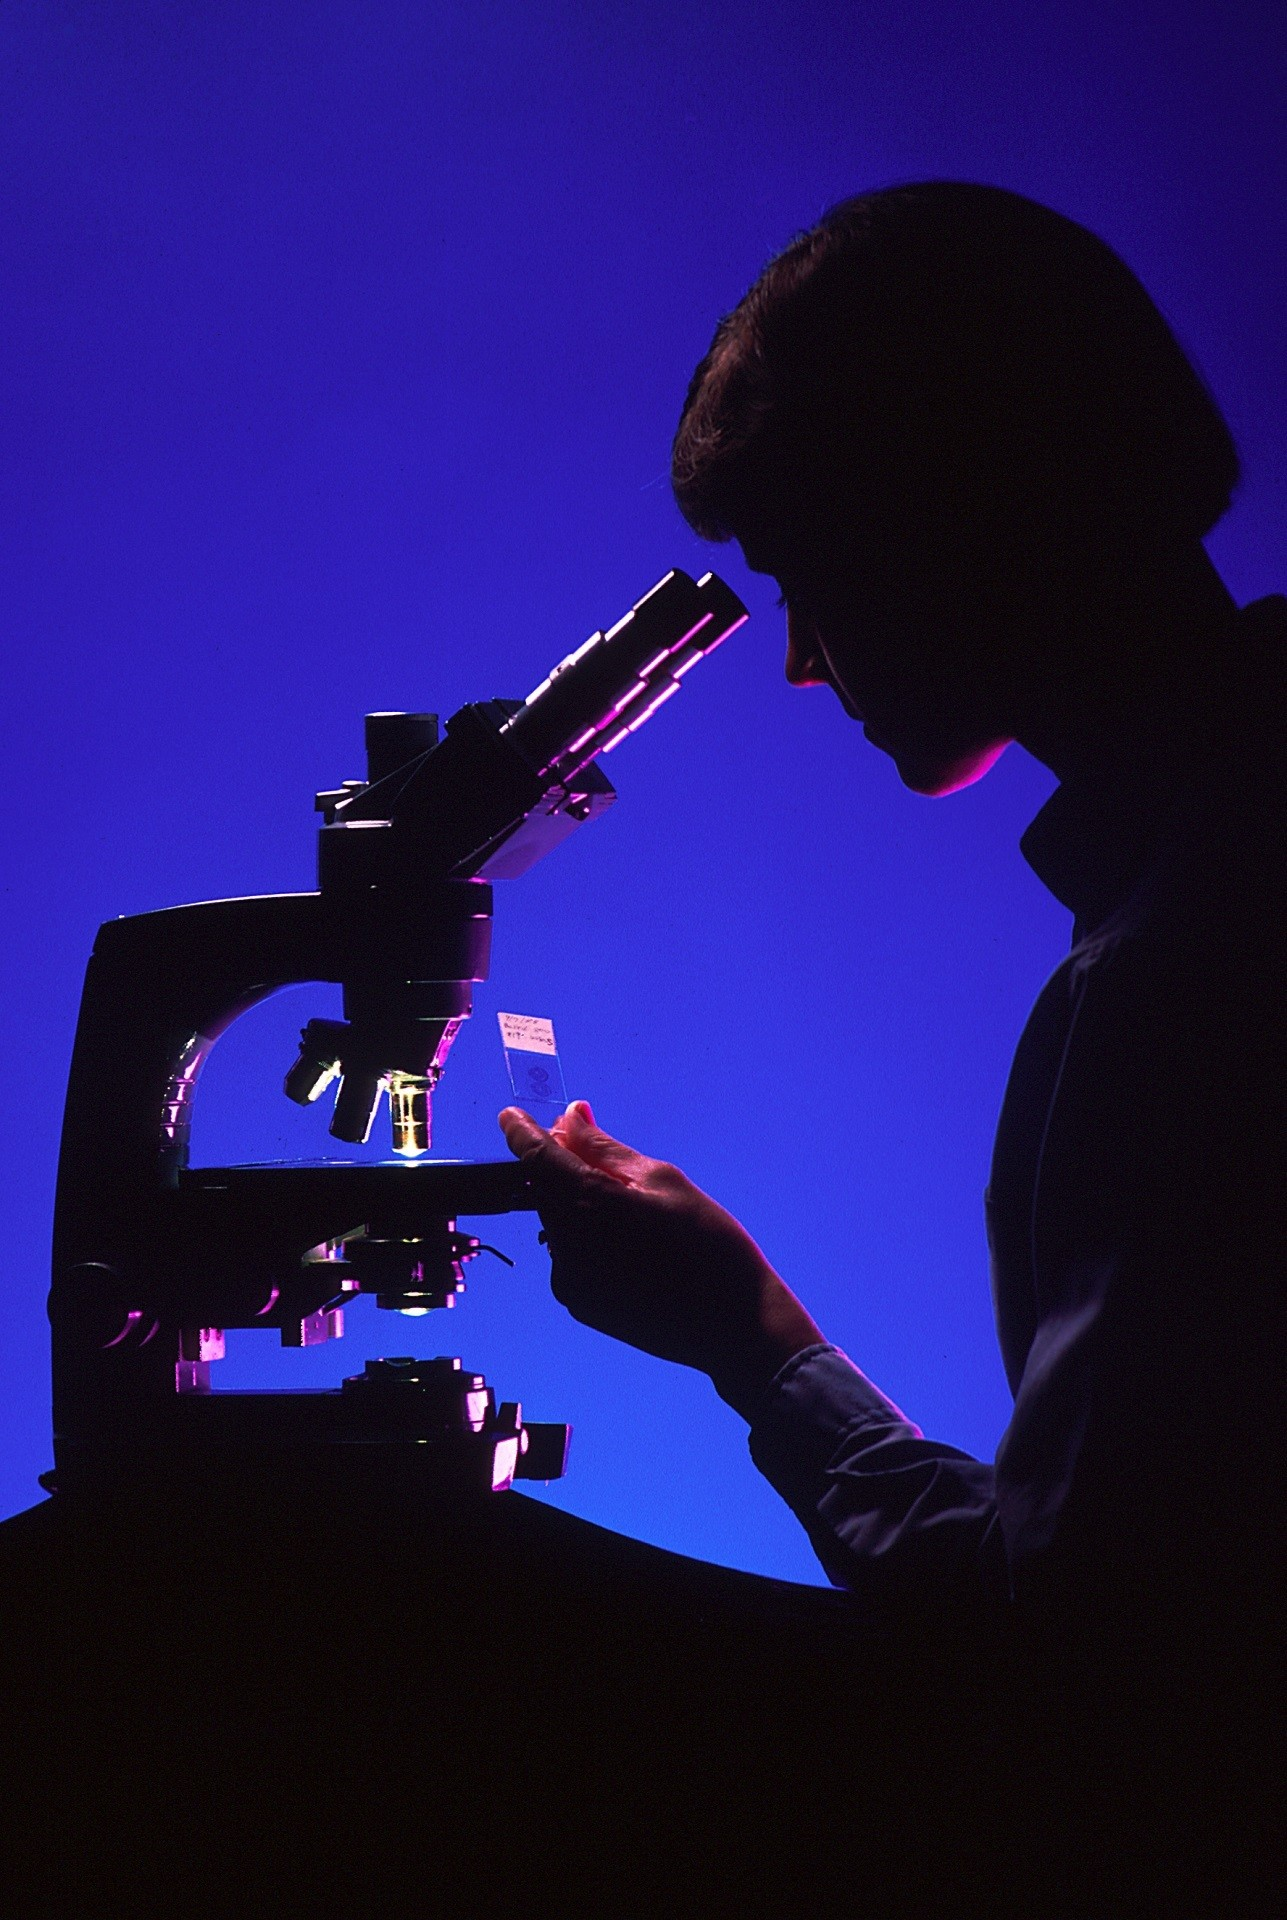 scientist-with-microscope-996187